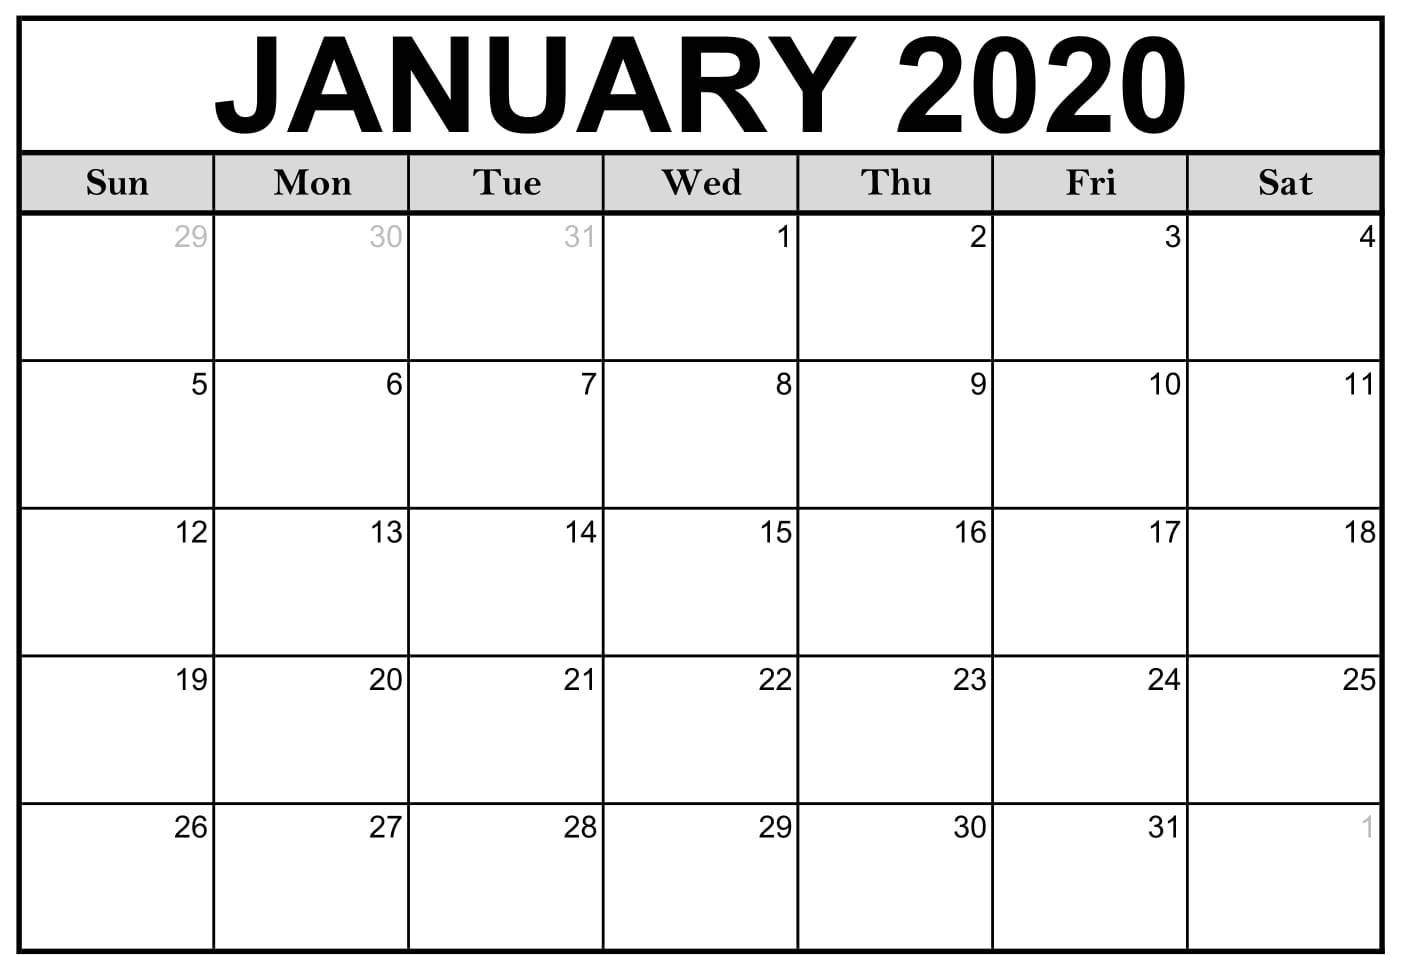 January 2020 Calendar Template | Printable Calendar Template for January 2020 Printable Calendar